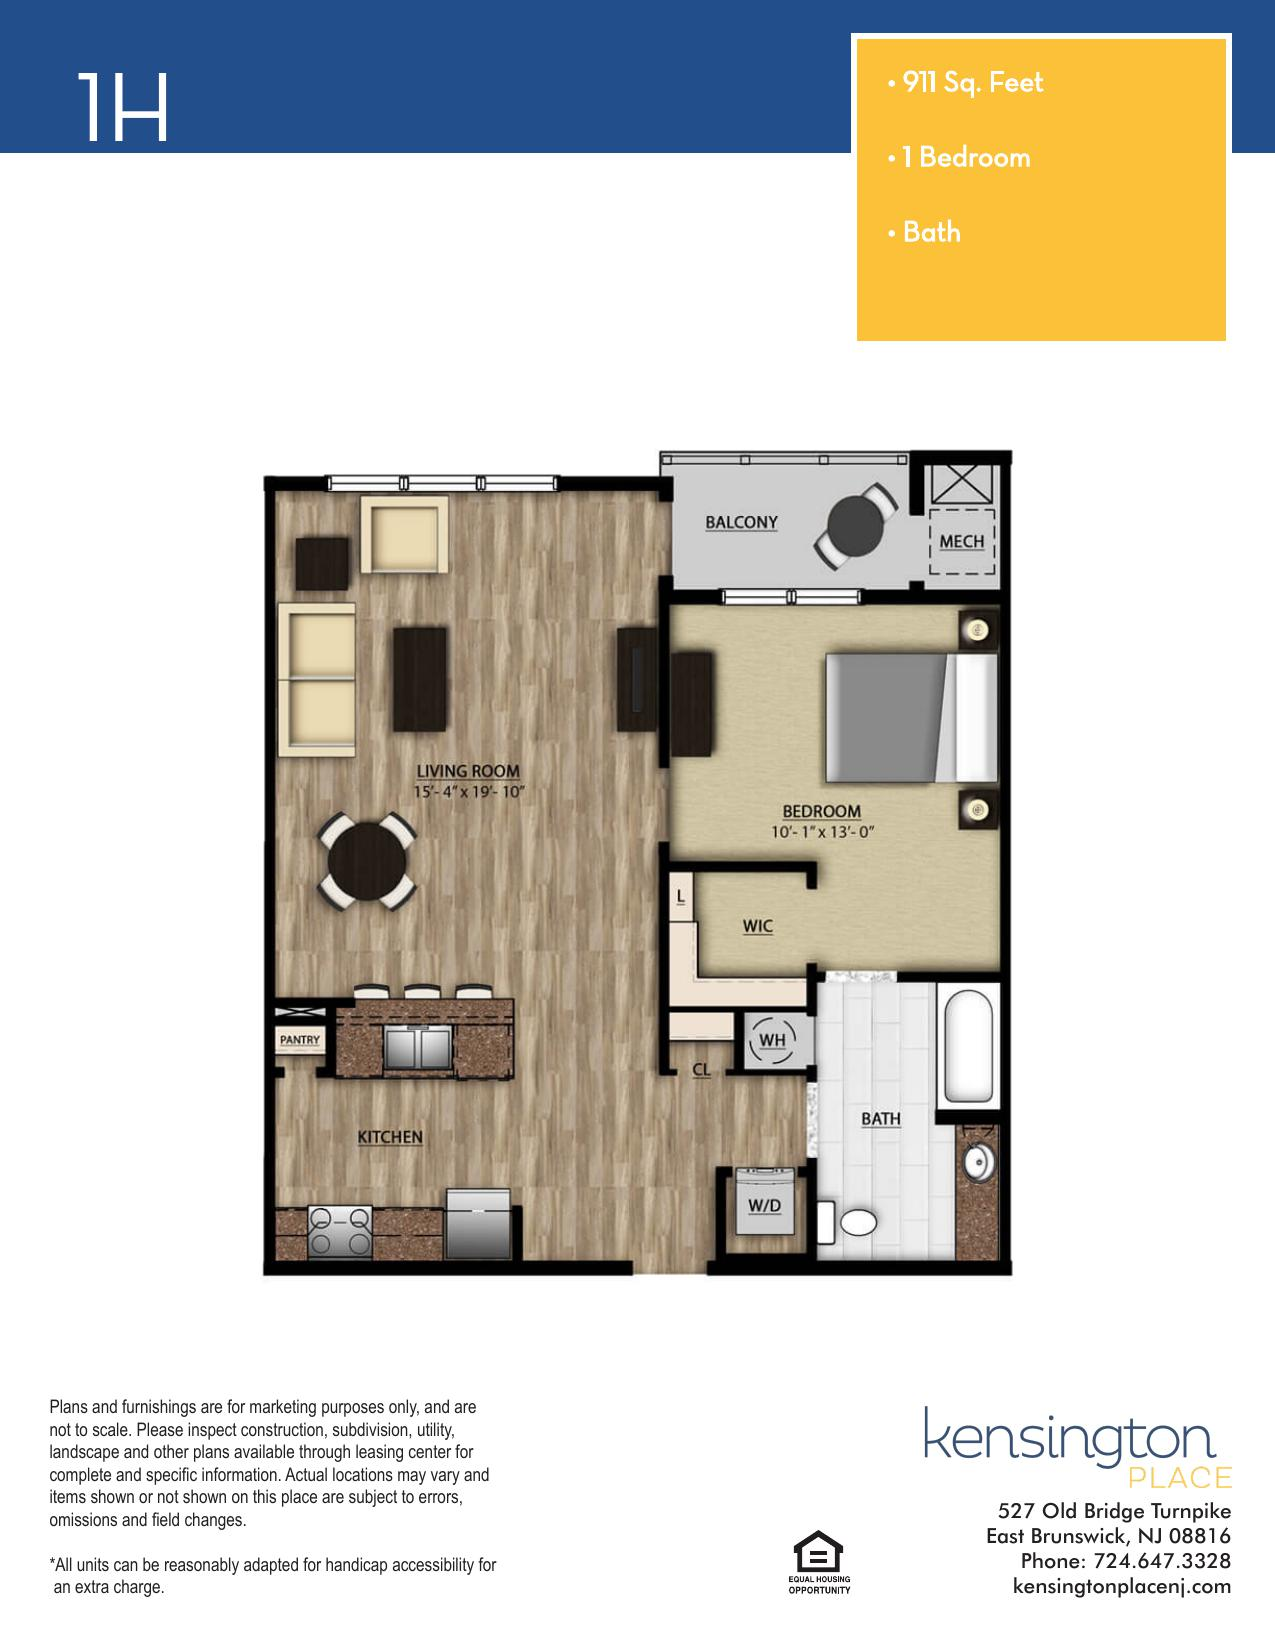 Kensington Place Apartment Floor Plan 1H